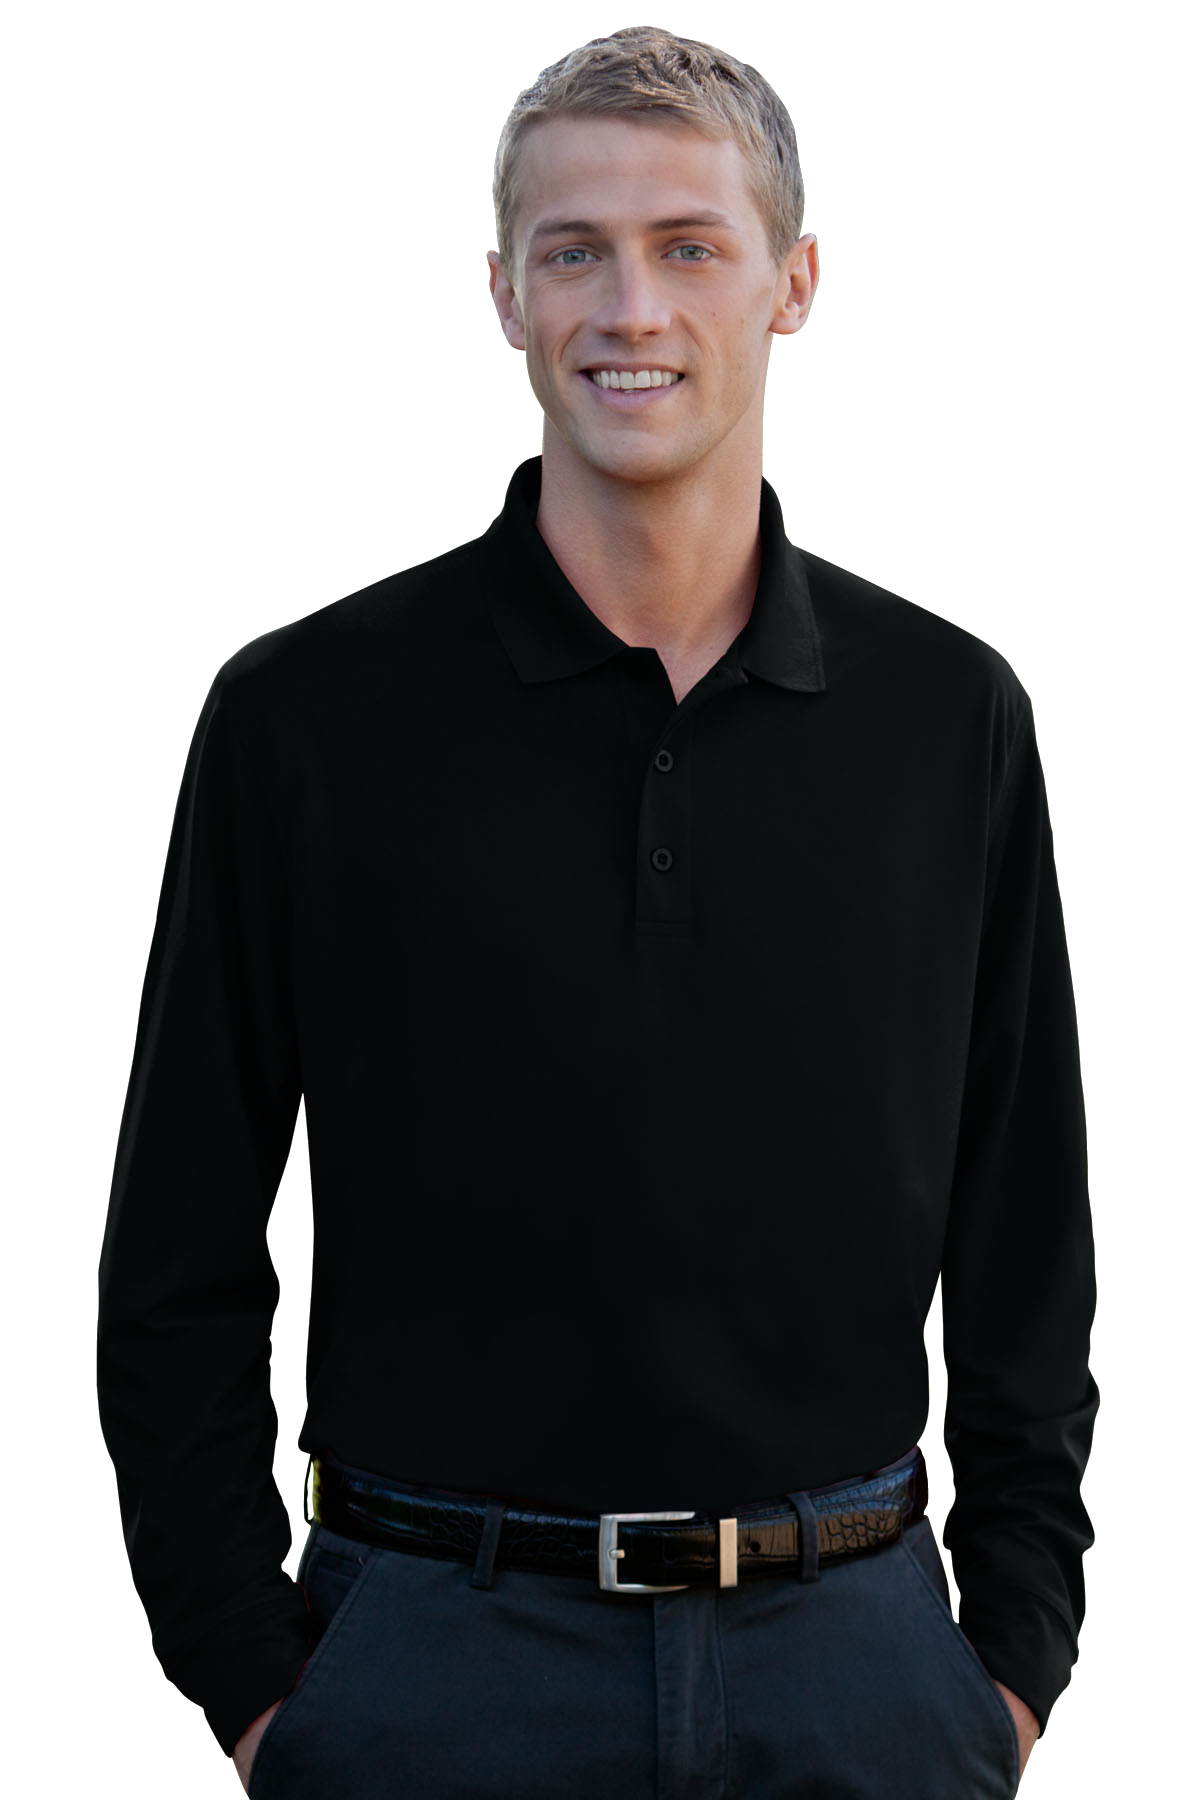 Vansport 2602 - Omega Solid Long Sleeve Mesh Tech Polo